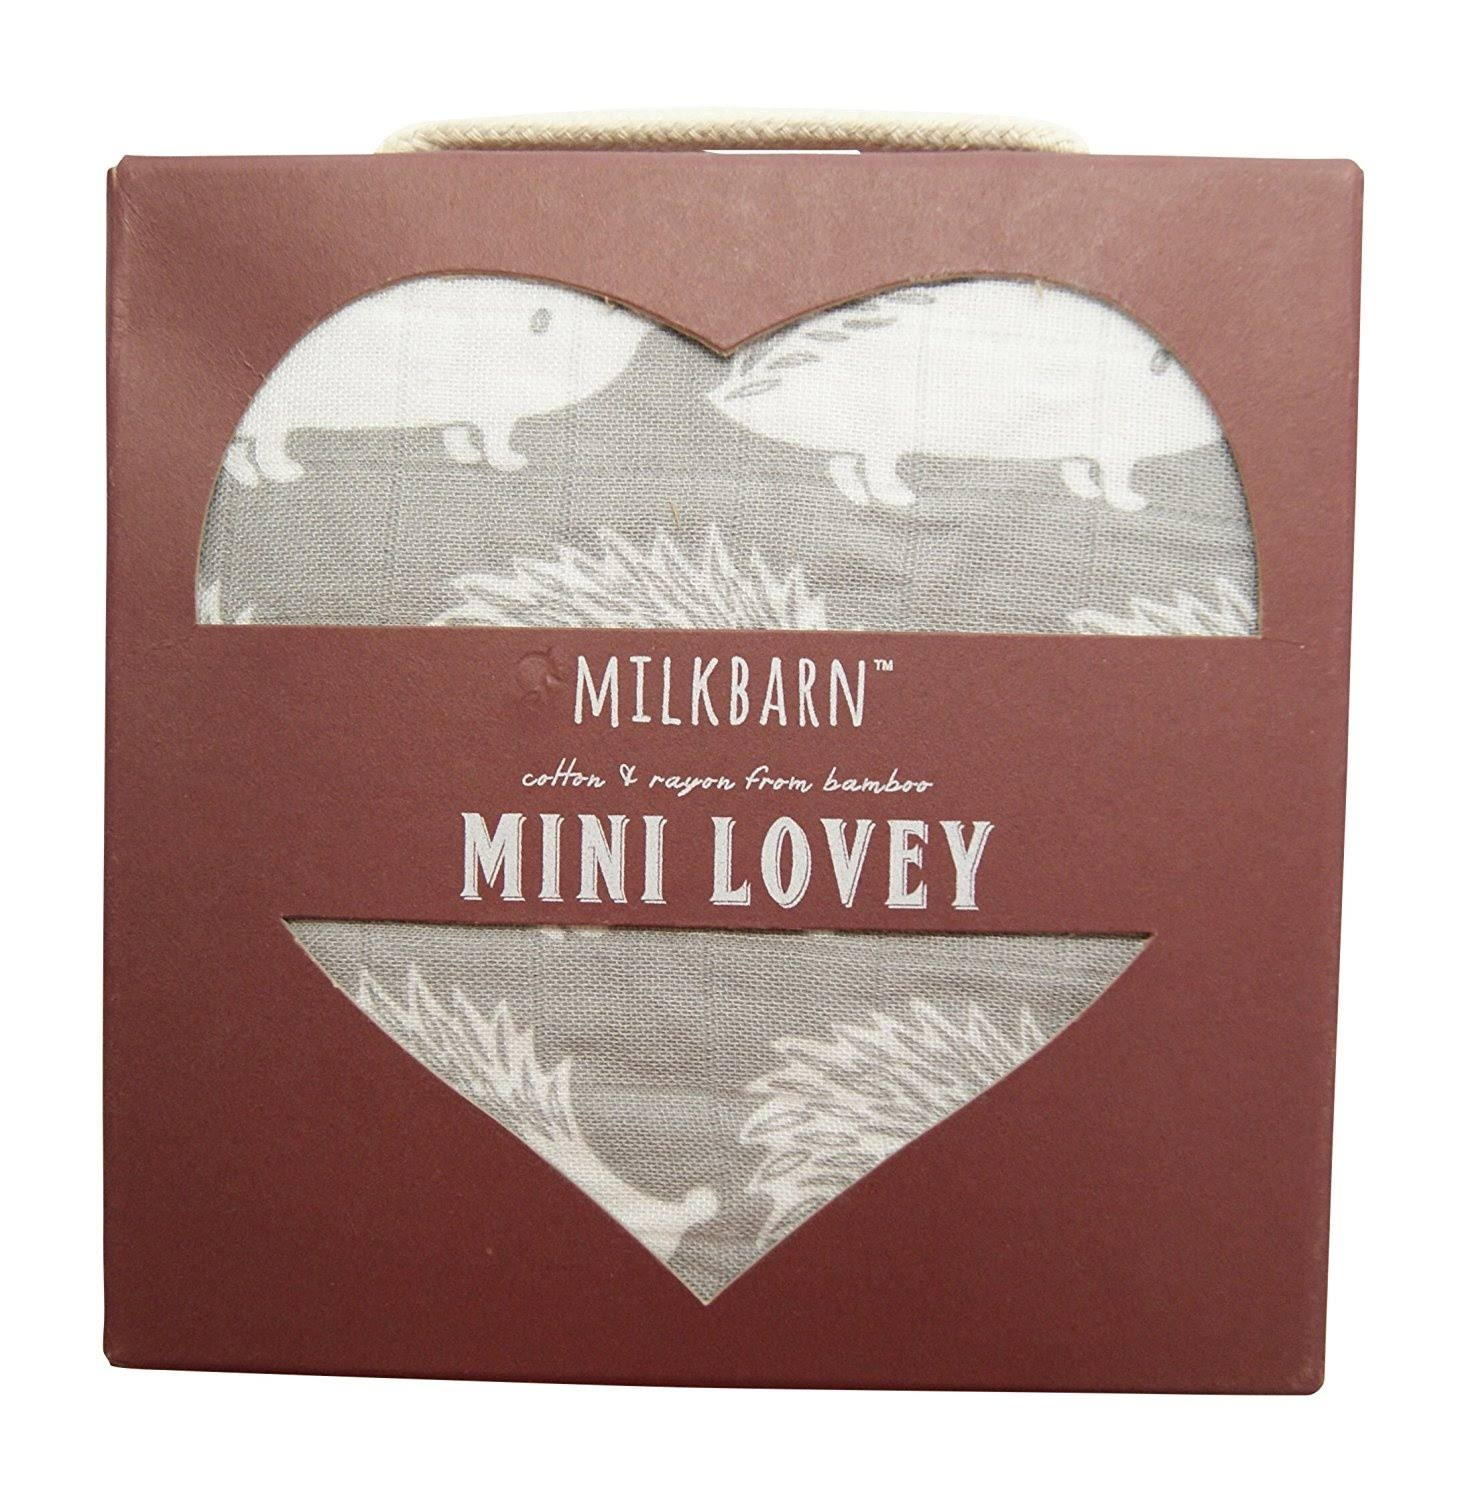 "Milkbarn Mini Lovey Baby Blanket - Grey Hedgehog, 18"" x 18"""